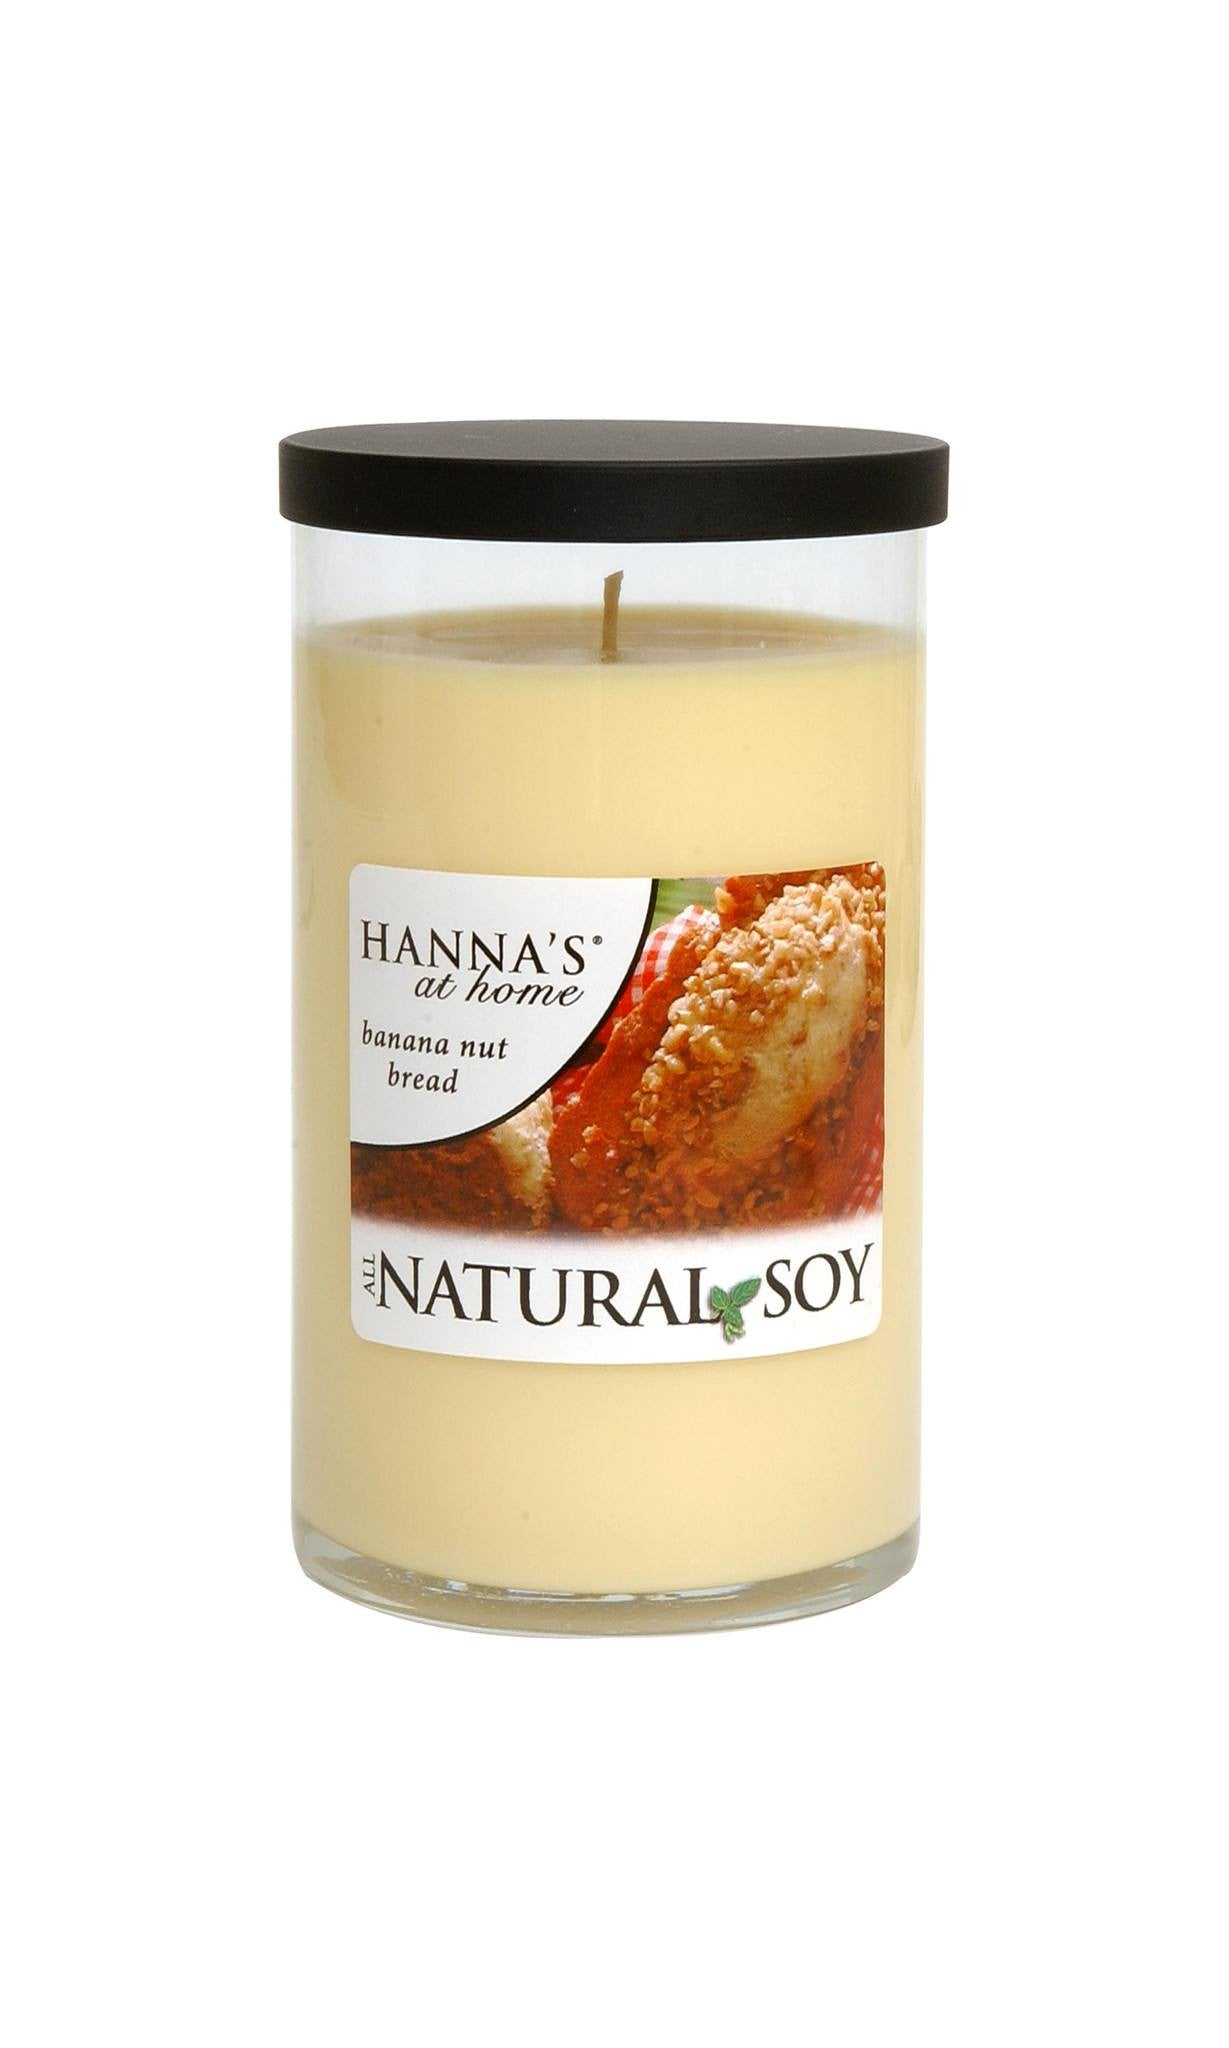 Natural Soy Banana Nut Bread Scented Soy Candle - Candlemart.com